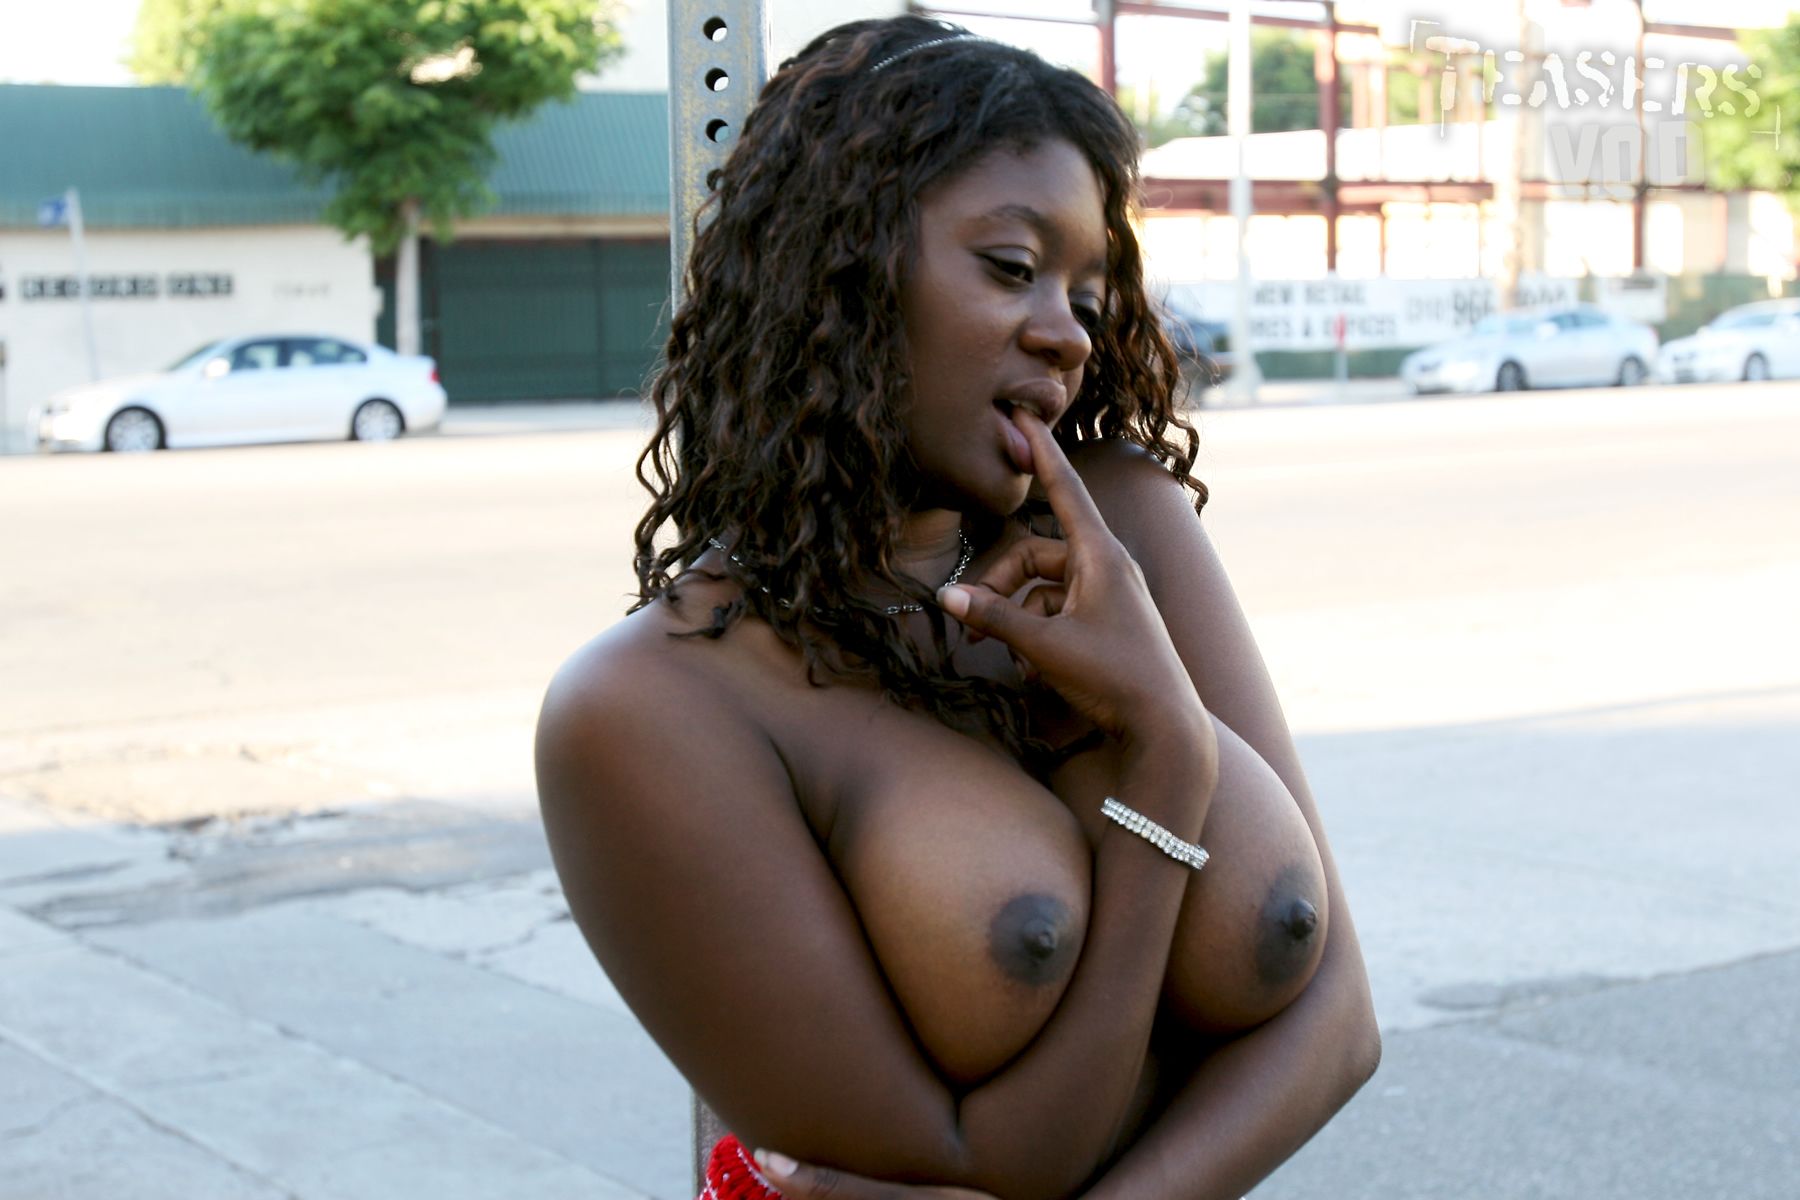 Apologise, but Golden brooks nude pictures agree